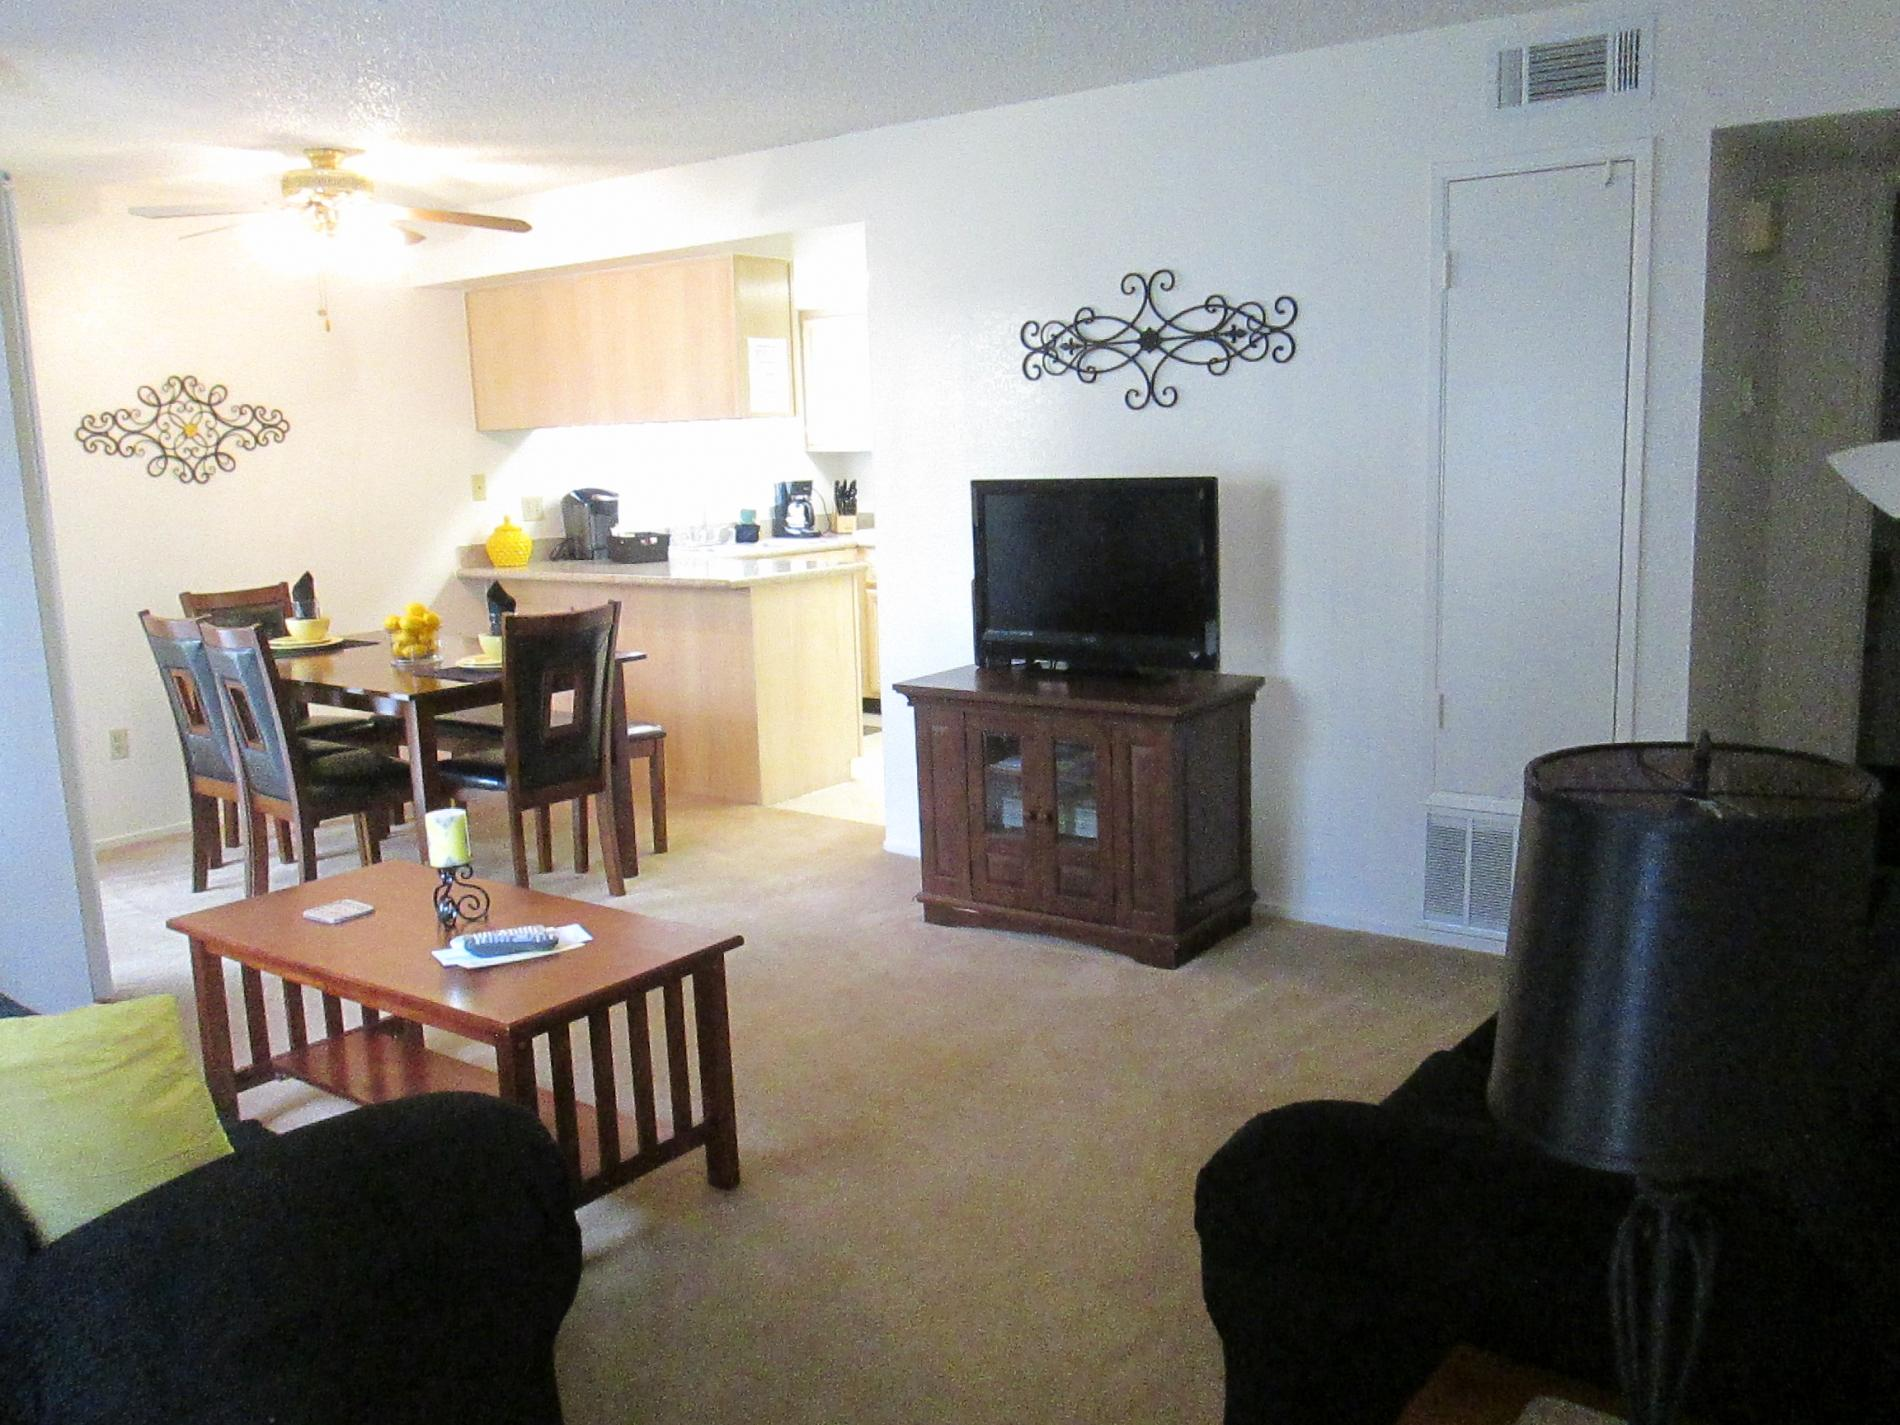 704A Family Suite at Whispering Meadows Apts.